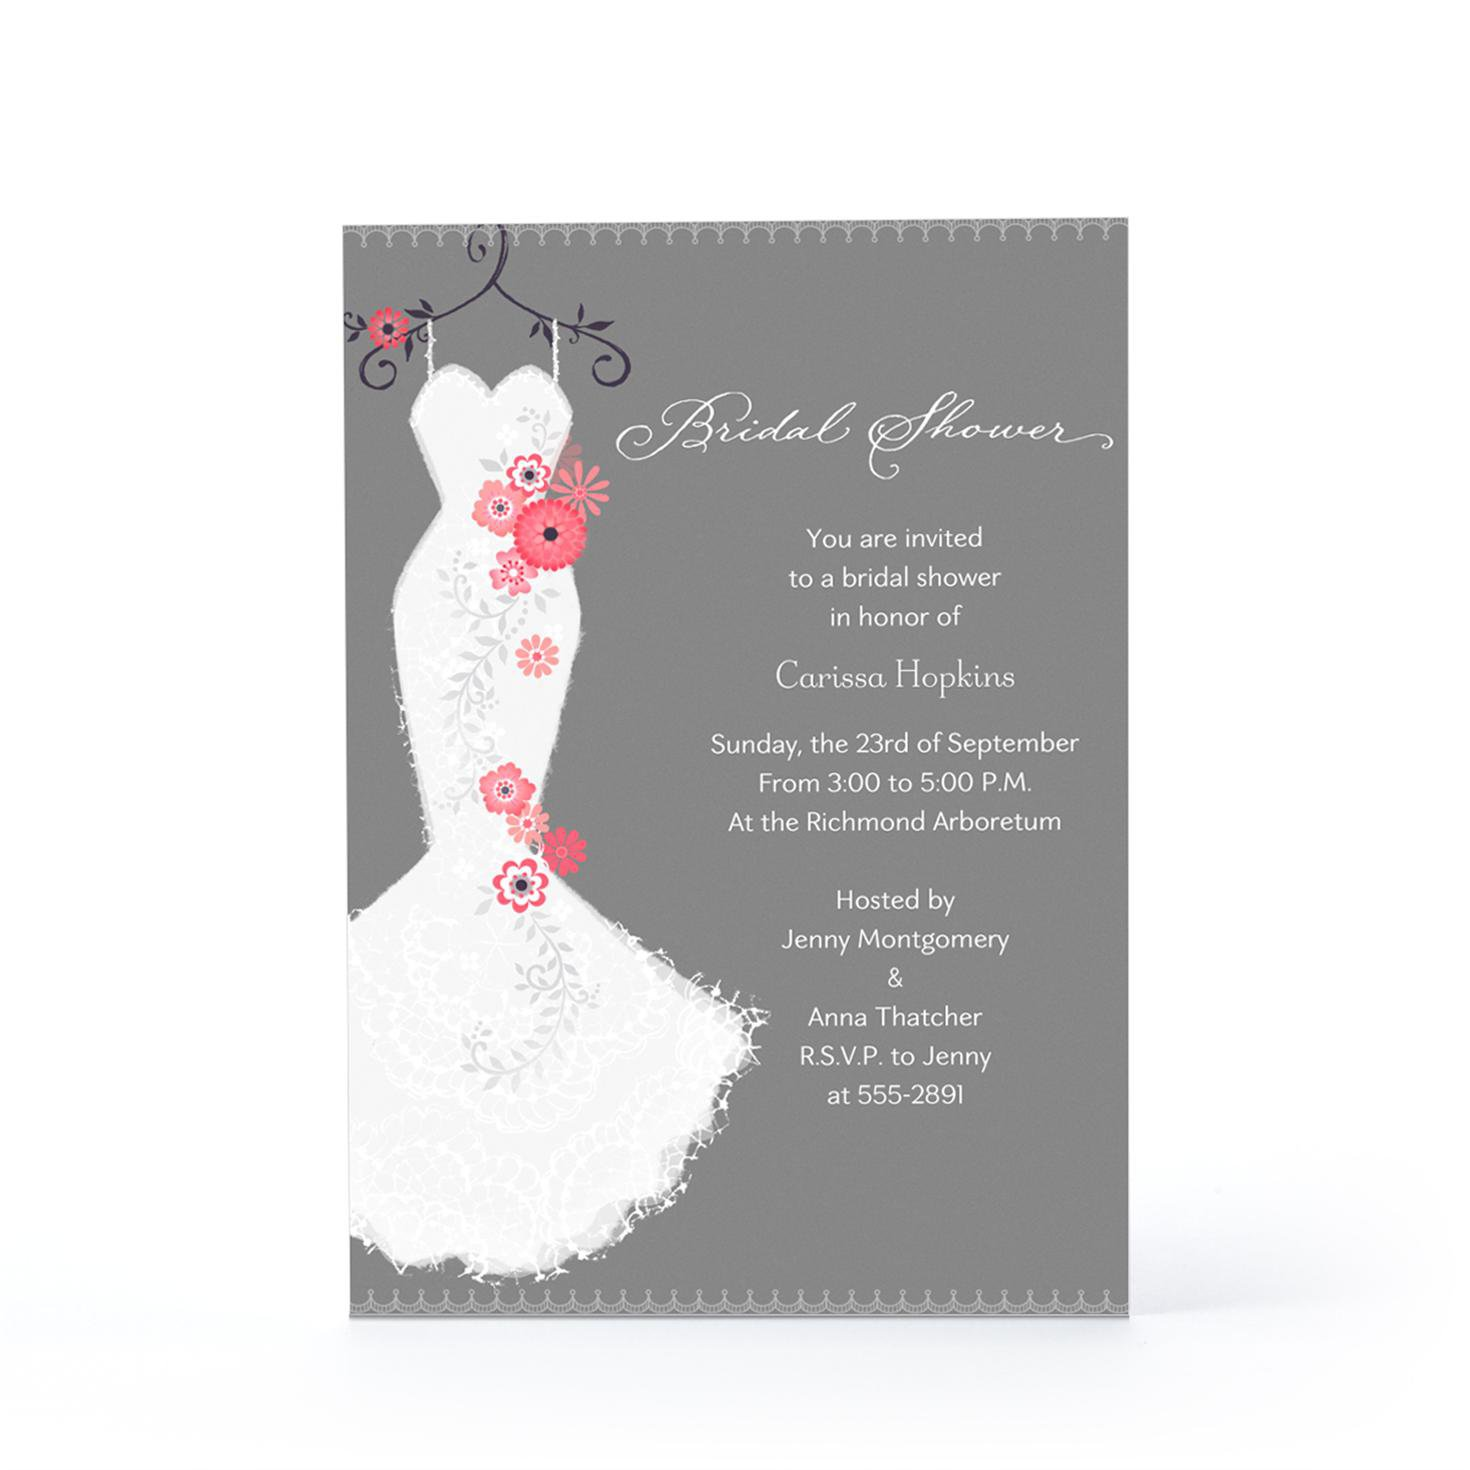 Free Bridal Shower Invitation Templates For Word U2013 Gangcraft, Printable  Invitations  Free Bridal Shower Invitation Templates For Word